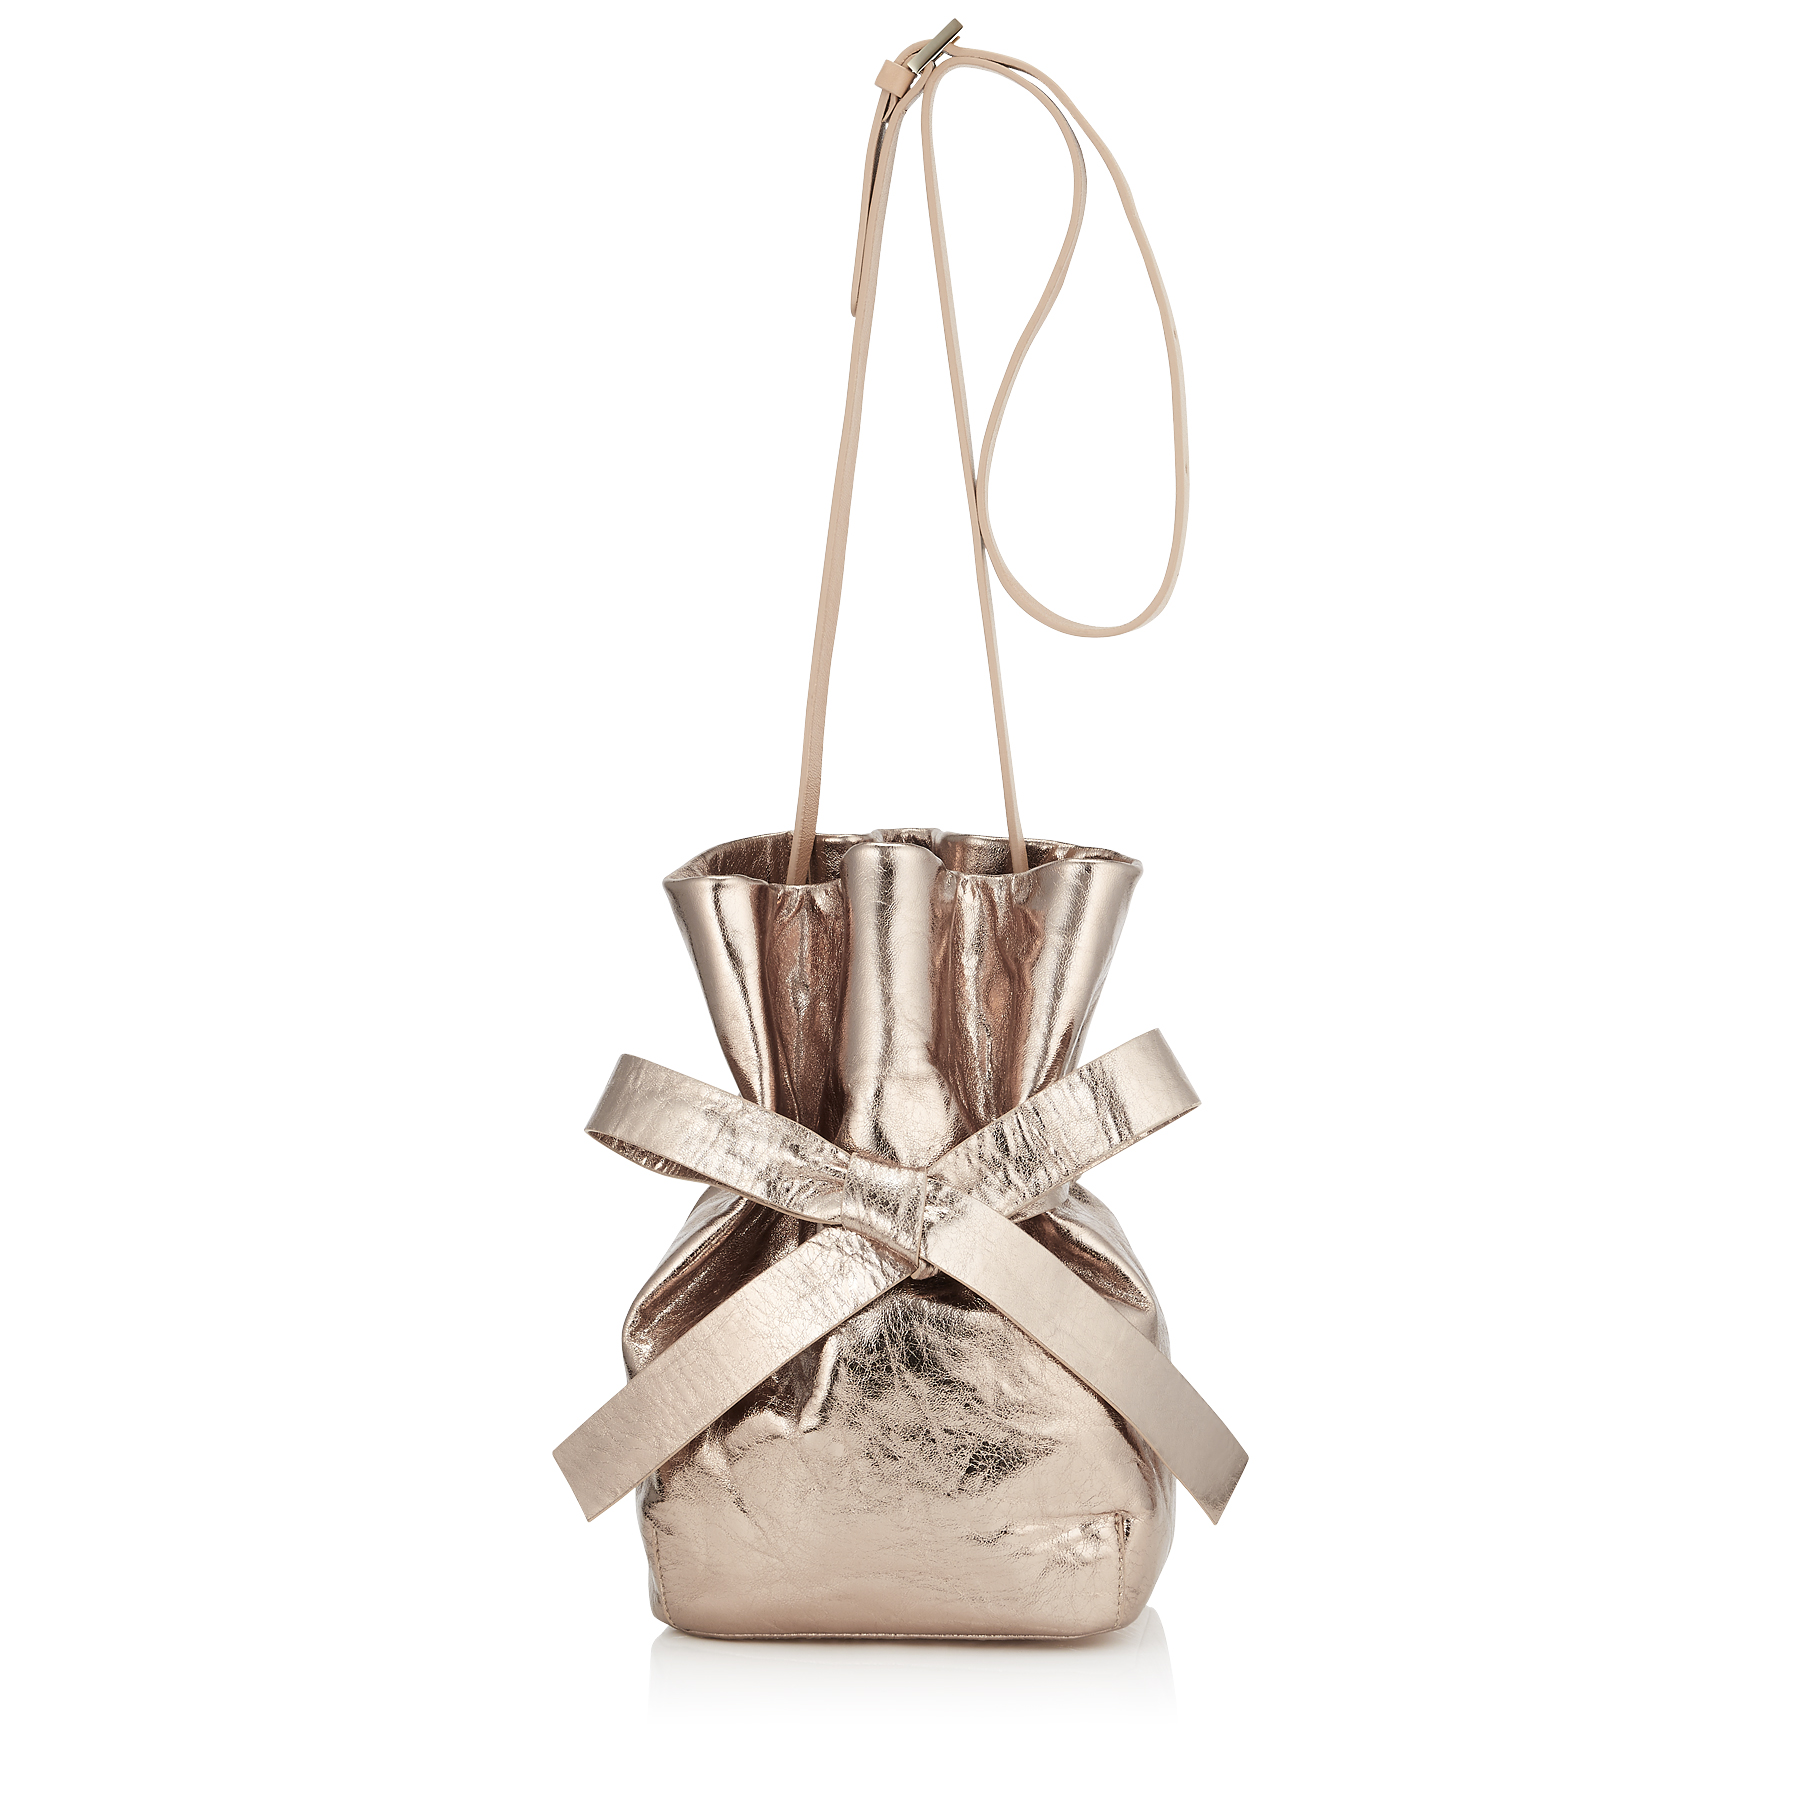 EVE Nude Metallic Crinkled Lambskin Bucket Bag